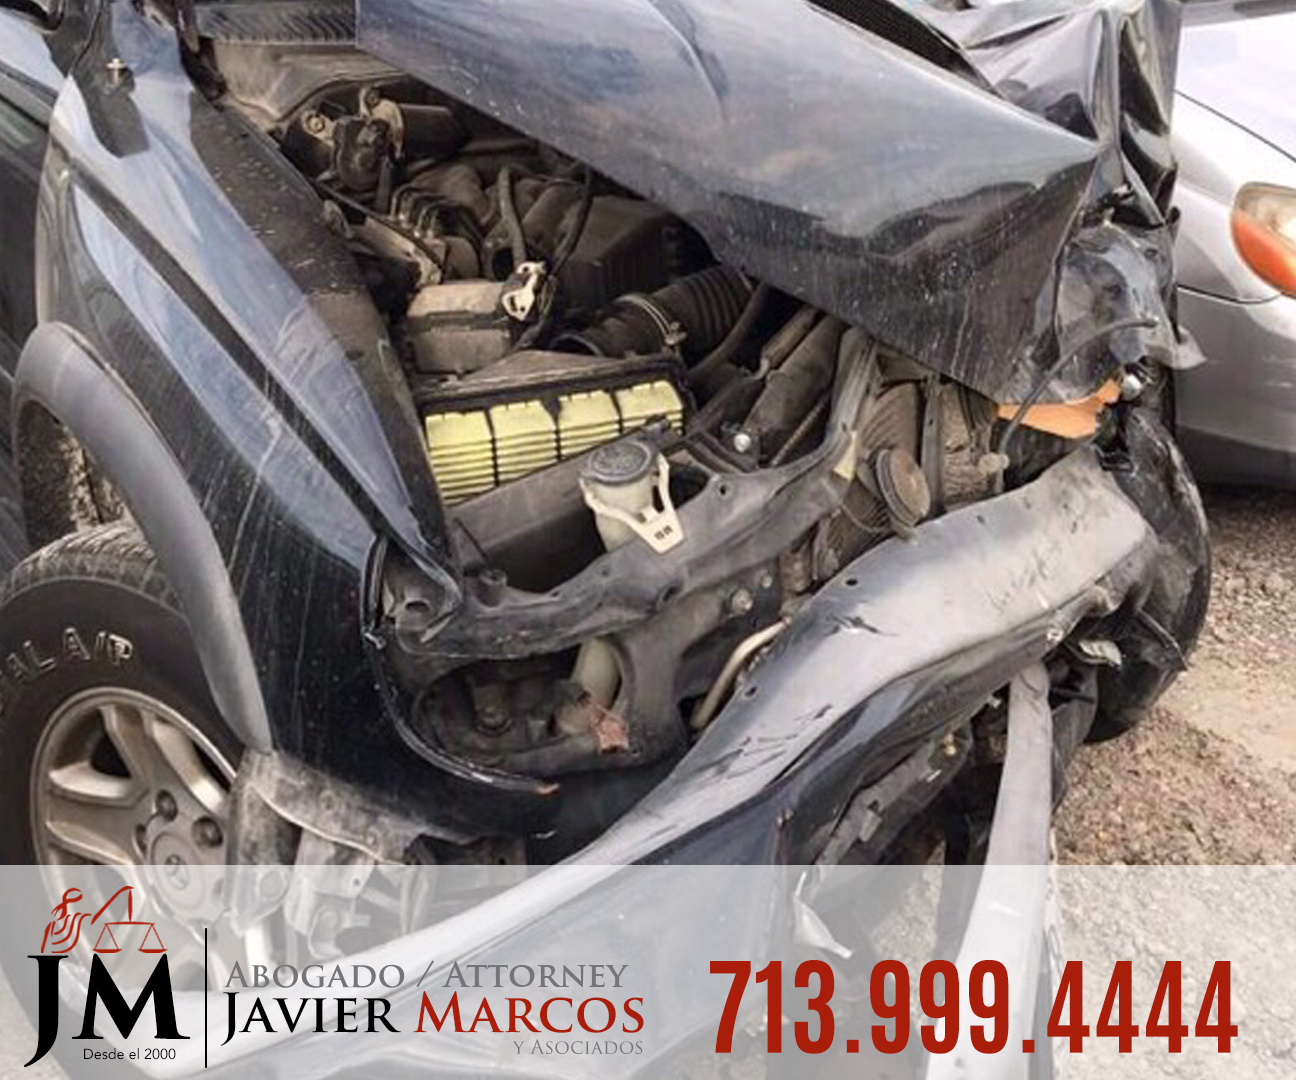 Personal Injury claim | Attorney Javier Marcos | 713.999.4444